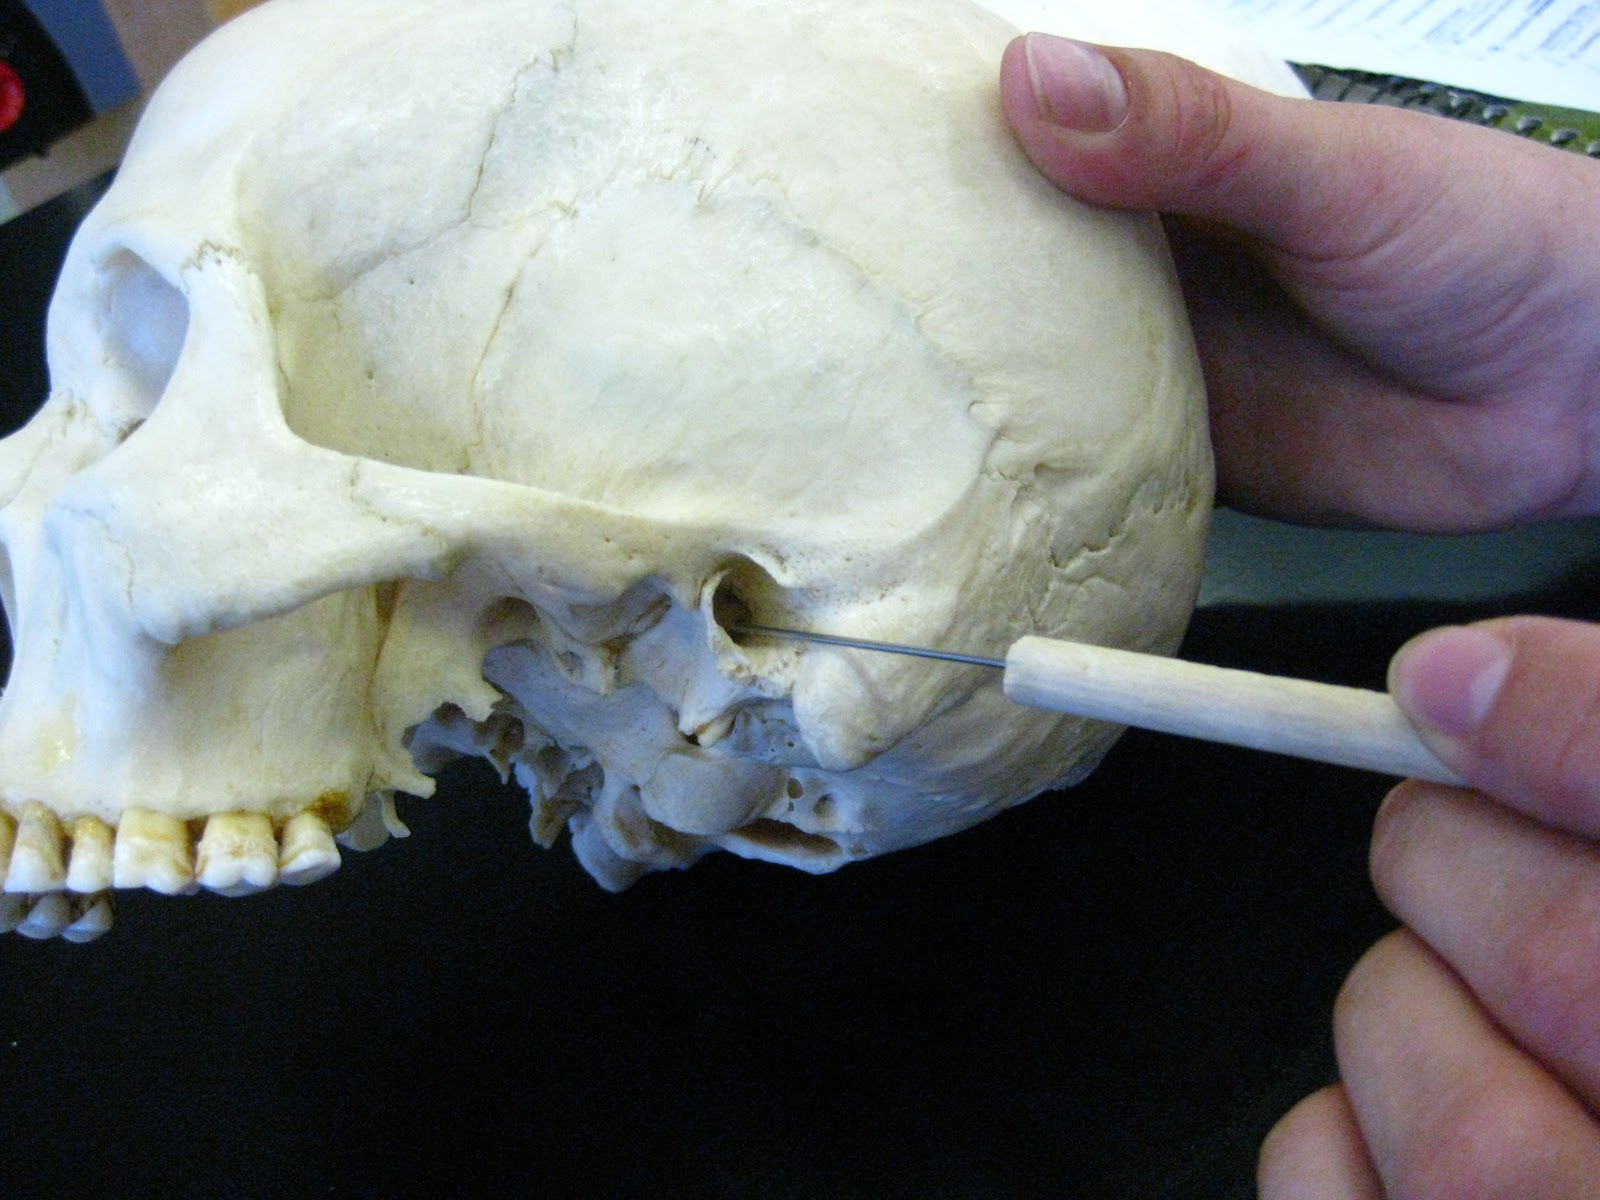 External Auditory Meatus Bone Boned: Human Skull - e...